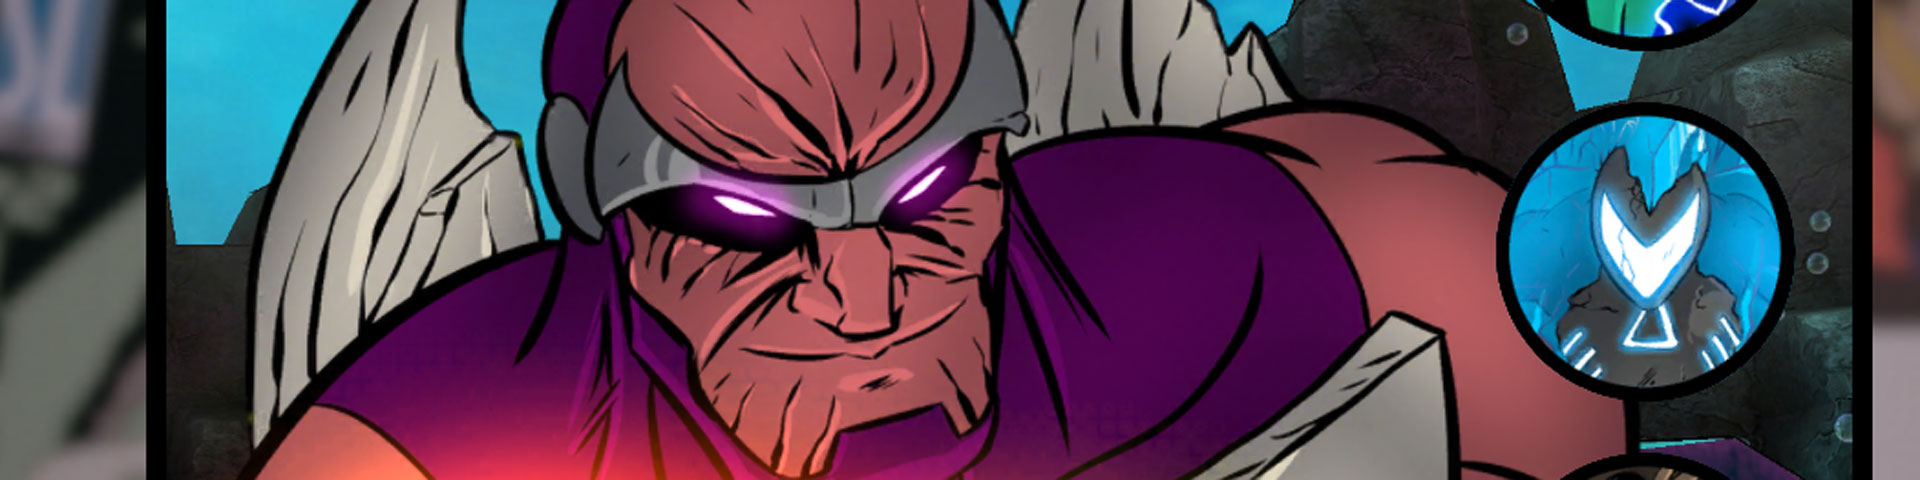 A screenshot from Sentinels, featuring a villain with glowing pink eyes grinning menacingly at the viewer.